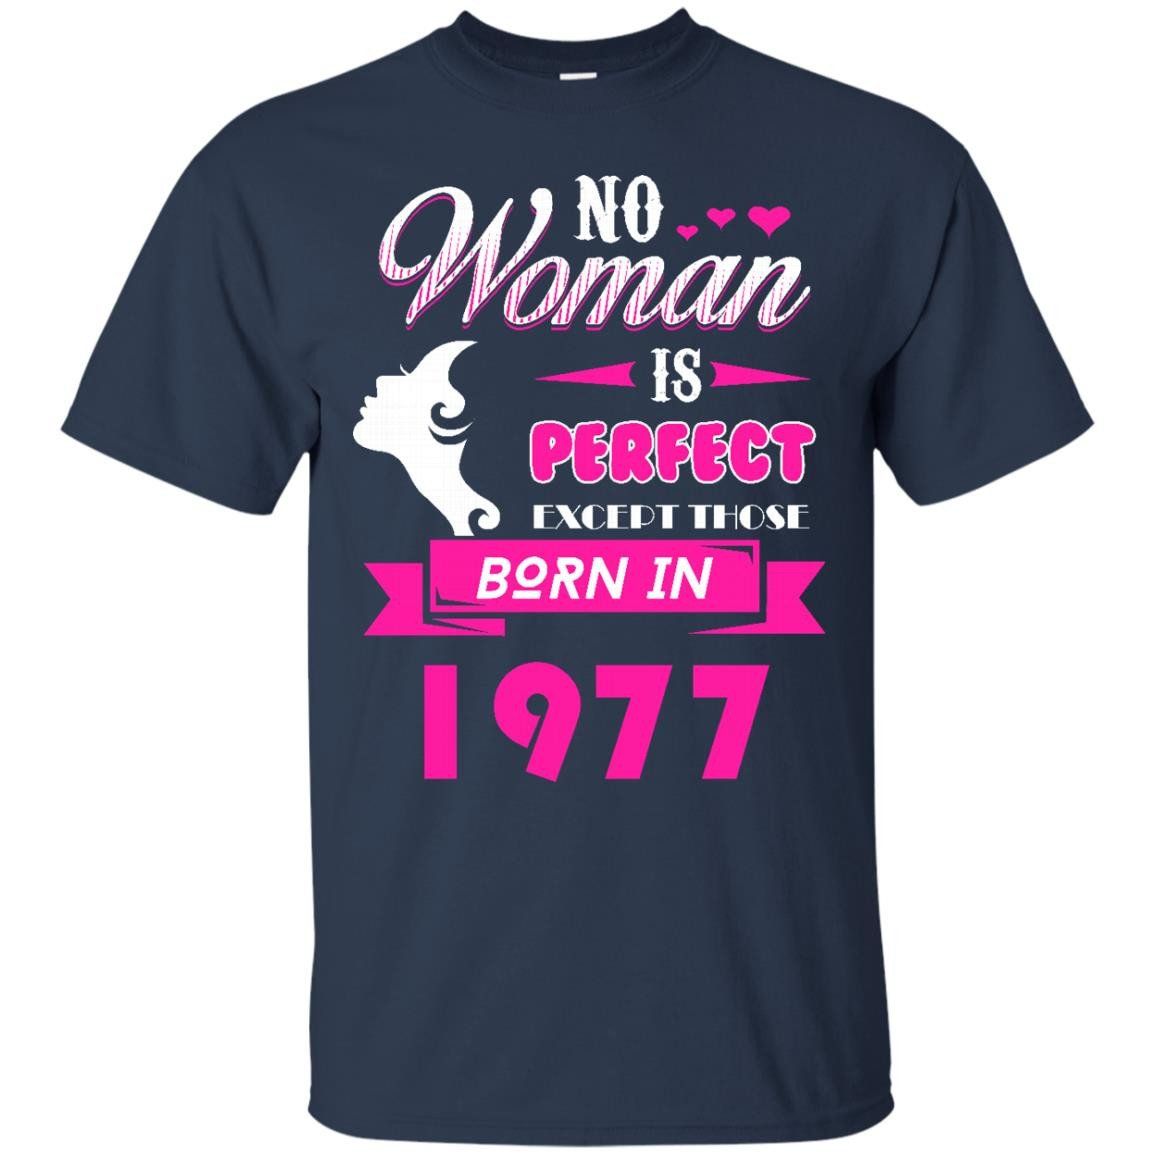 1977 Woman Shirts No Woman Perfect Except Those In 1977 T-shirts Hoodies Sweatshirts